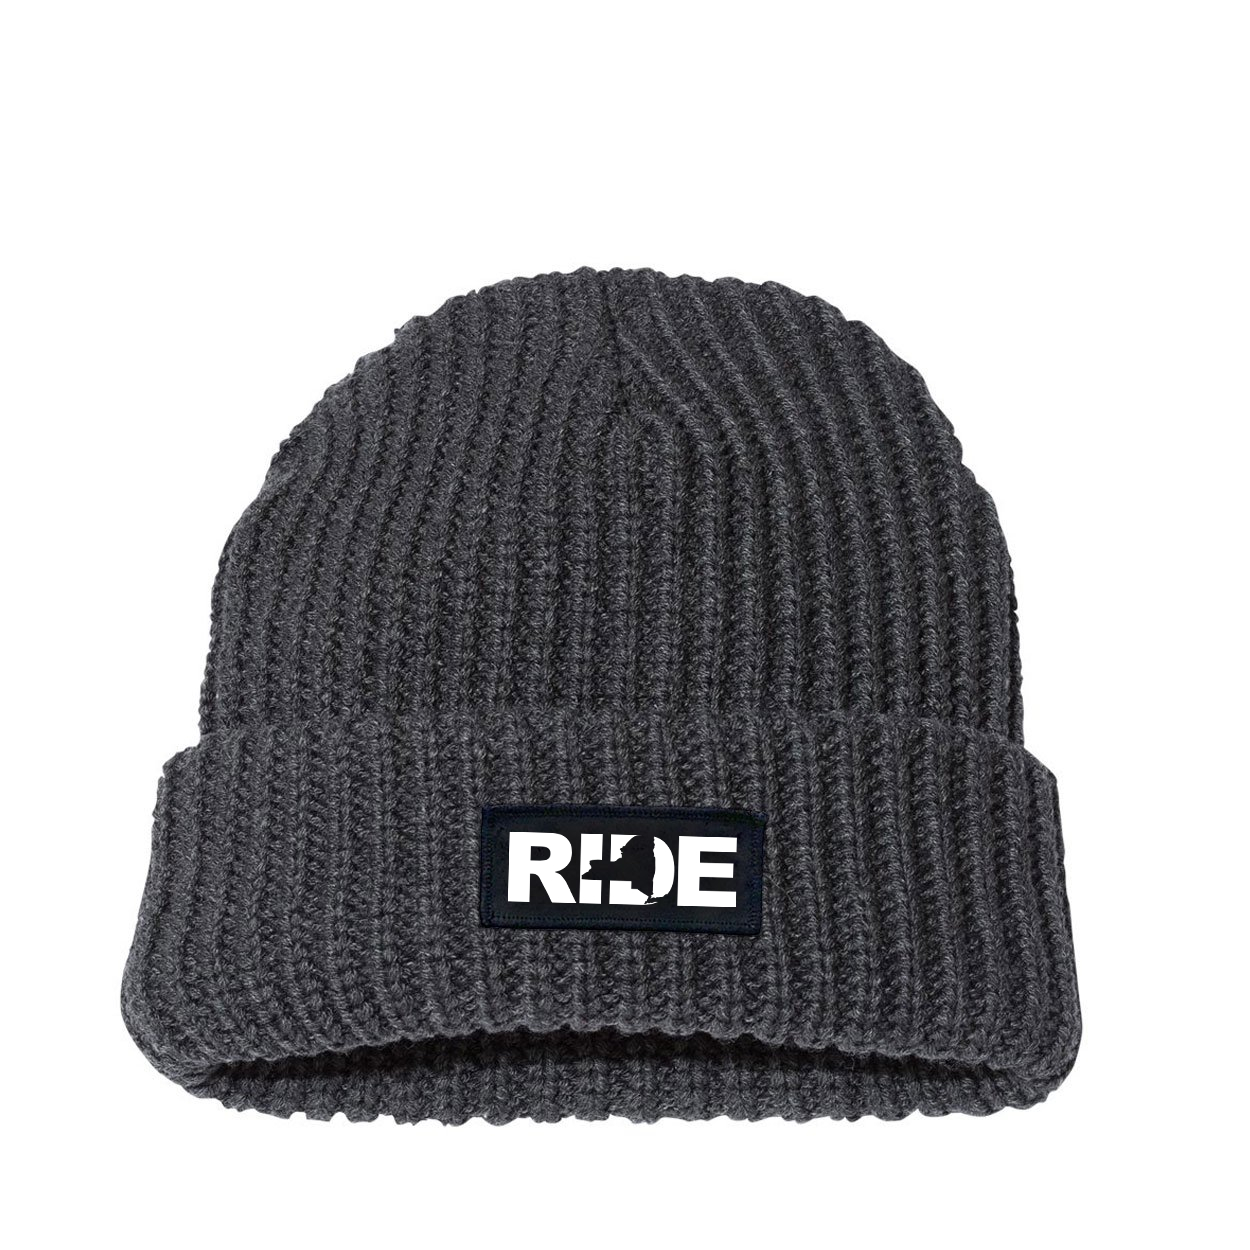 Ride New York Night Out Woven Patch Roll Up Jumbo Chunky Knit Beanie Charcoal (White Logo)